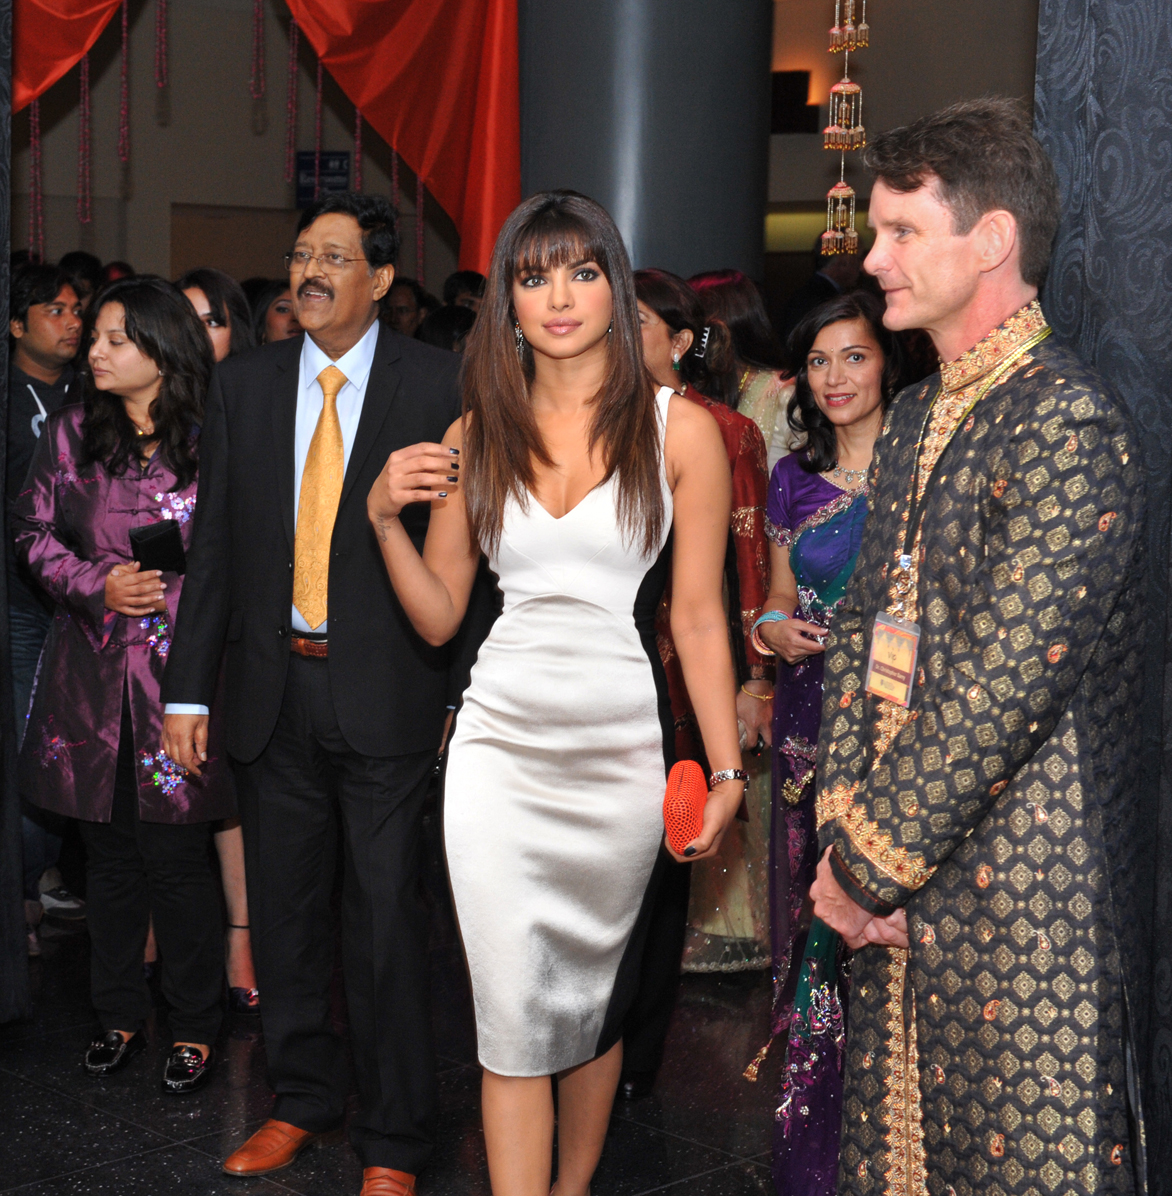 Priyanka Chopra, organ donation, Dr. Chris Barry, bLifeNY, #WLY, transplantation, Bollywood, #drbarryindia